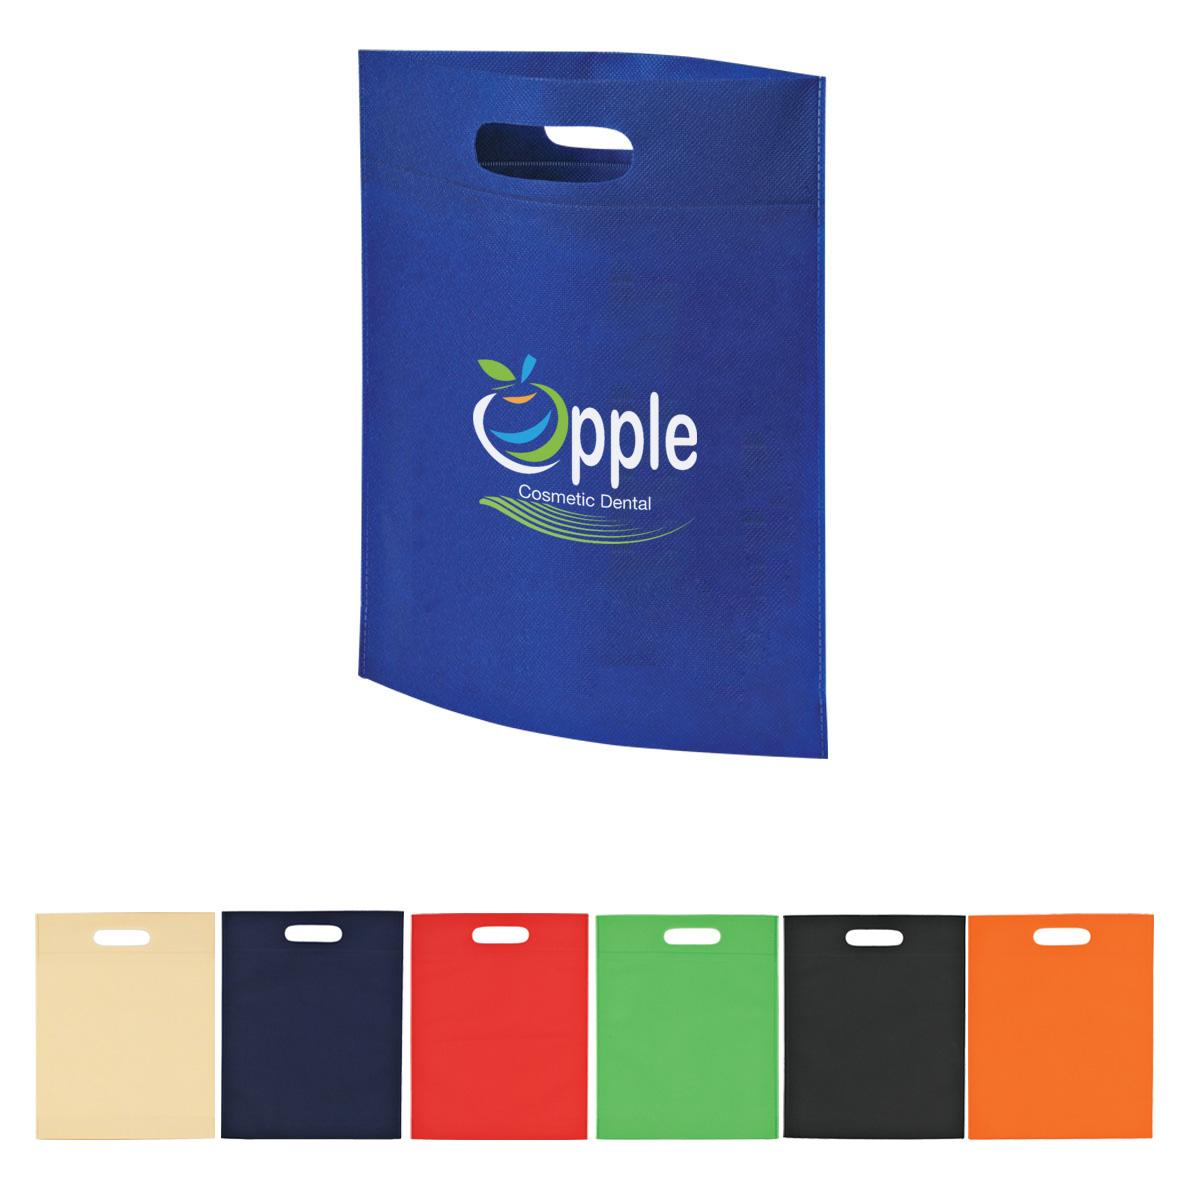 Heat Sealed Non-Woven Exhibition Tote